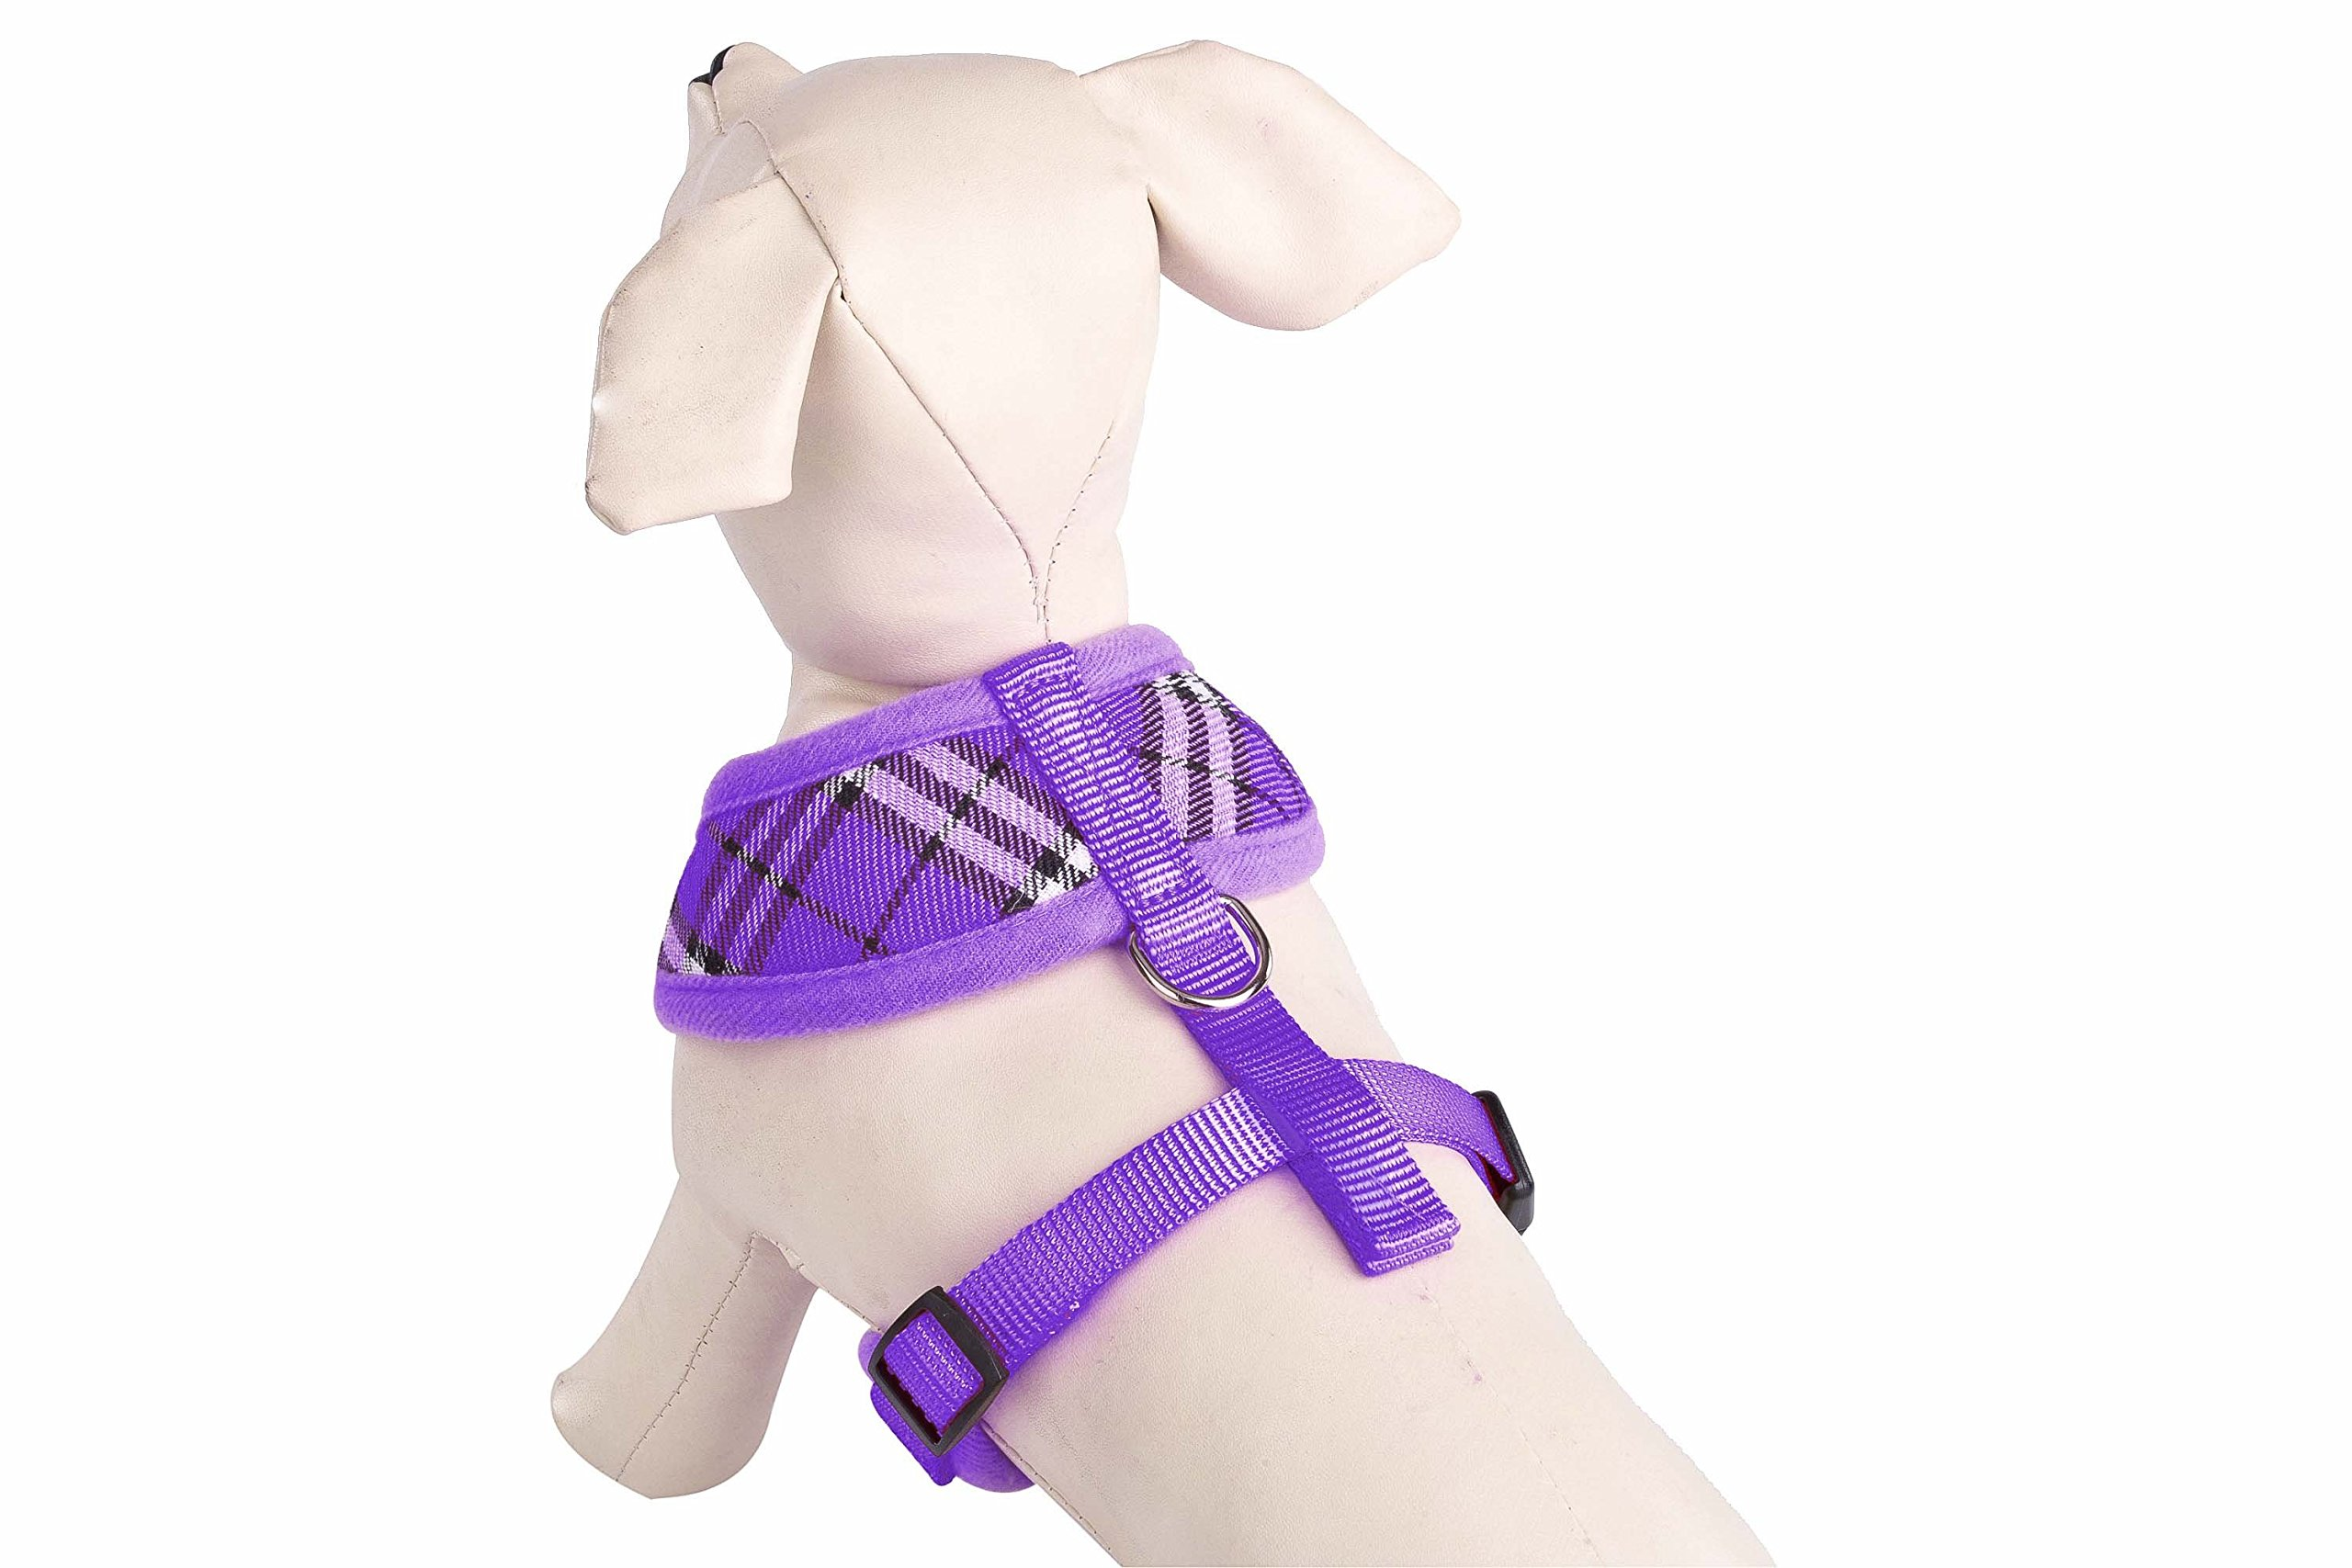 PUPTECK Soft Mesh Dog Harness Pet Puppy Comfort Padded Vest No Pull Harnesses, Purple Medium by PUPTECK (Image #1)